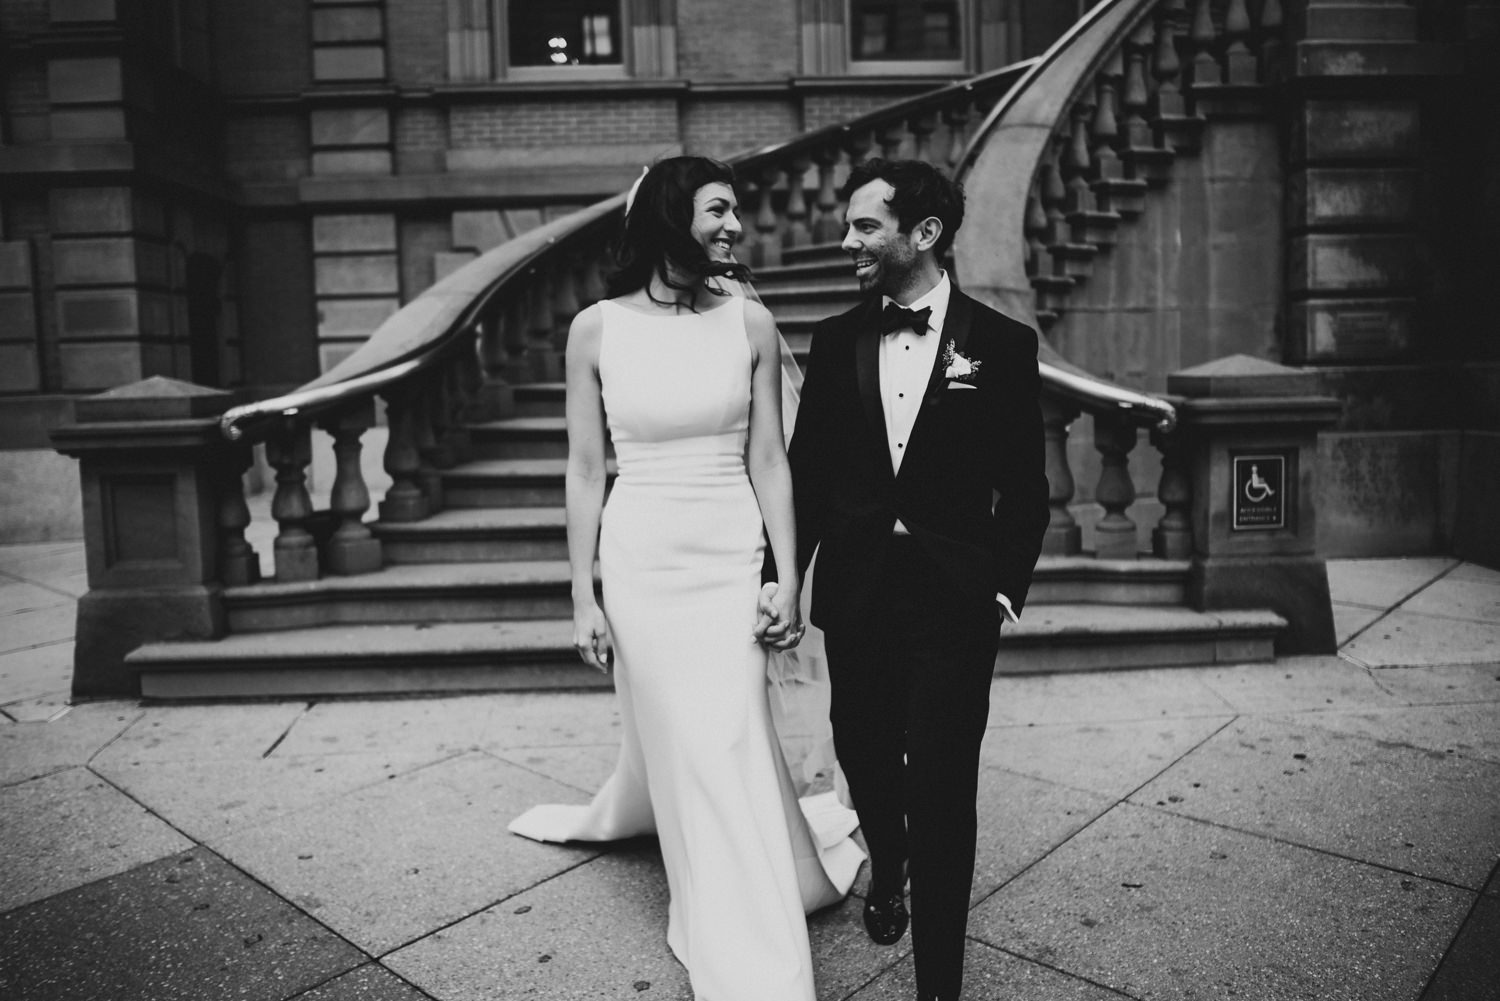 Elegant-Wedding-at-Academy-of-Music-in-Philadelphia-by-Gabriele-Stonyte-Photography-10.jpg